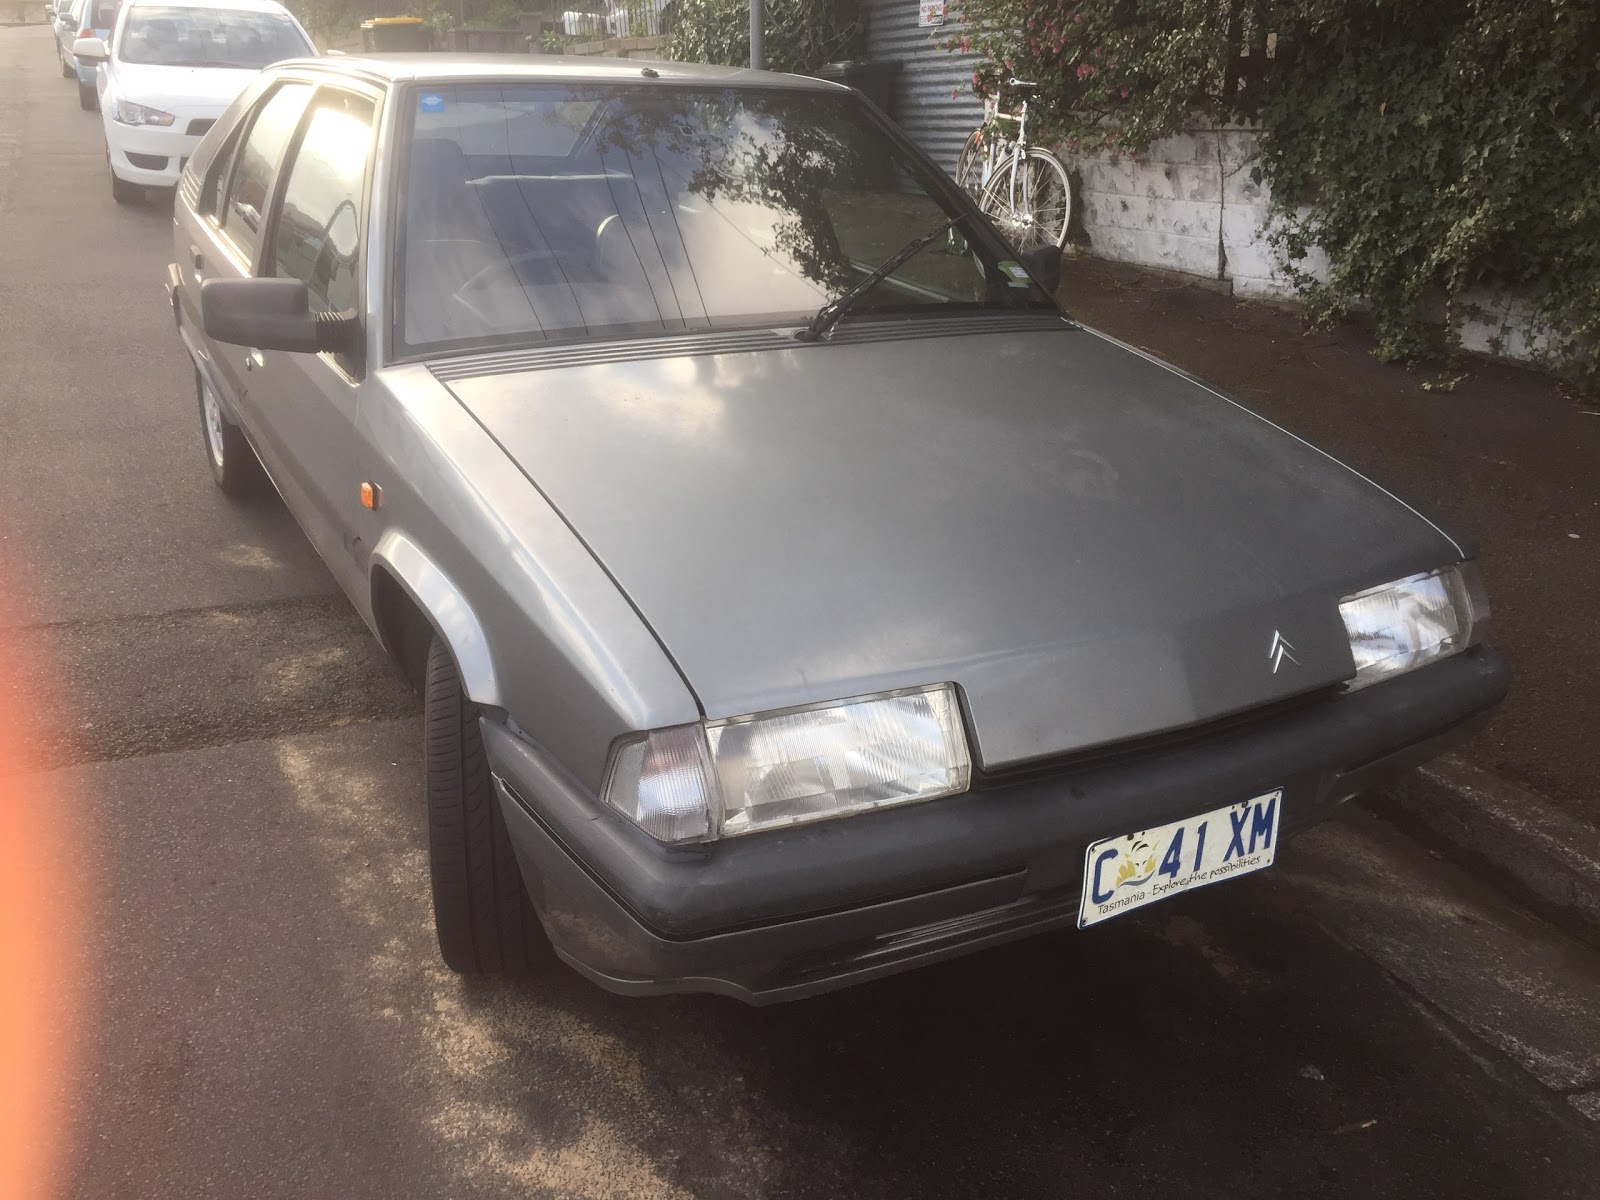 Random 159 Citroen Bx 19 Tzi Upper Middle Petrol Head French Cars Say What You Will About But Theyre Rarely Dull Citroens Especially This One A 1994 Was Towards The End Of